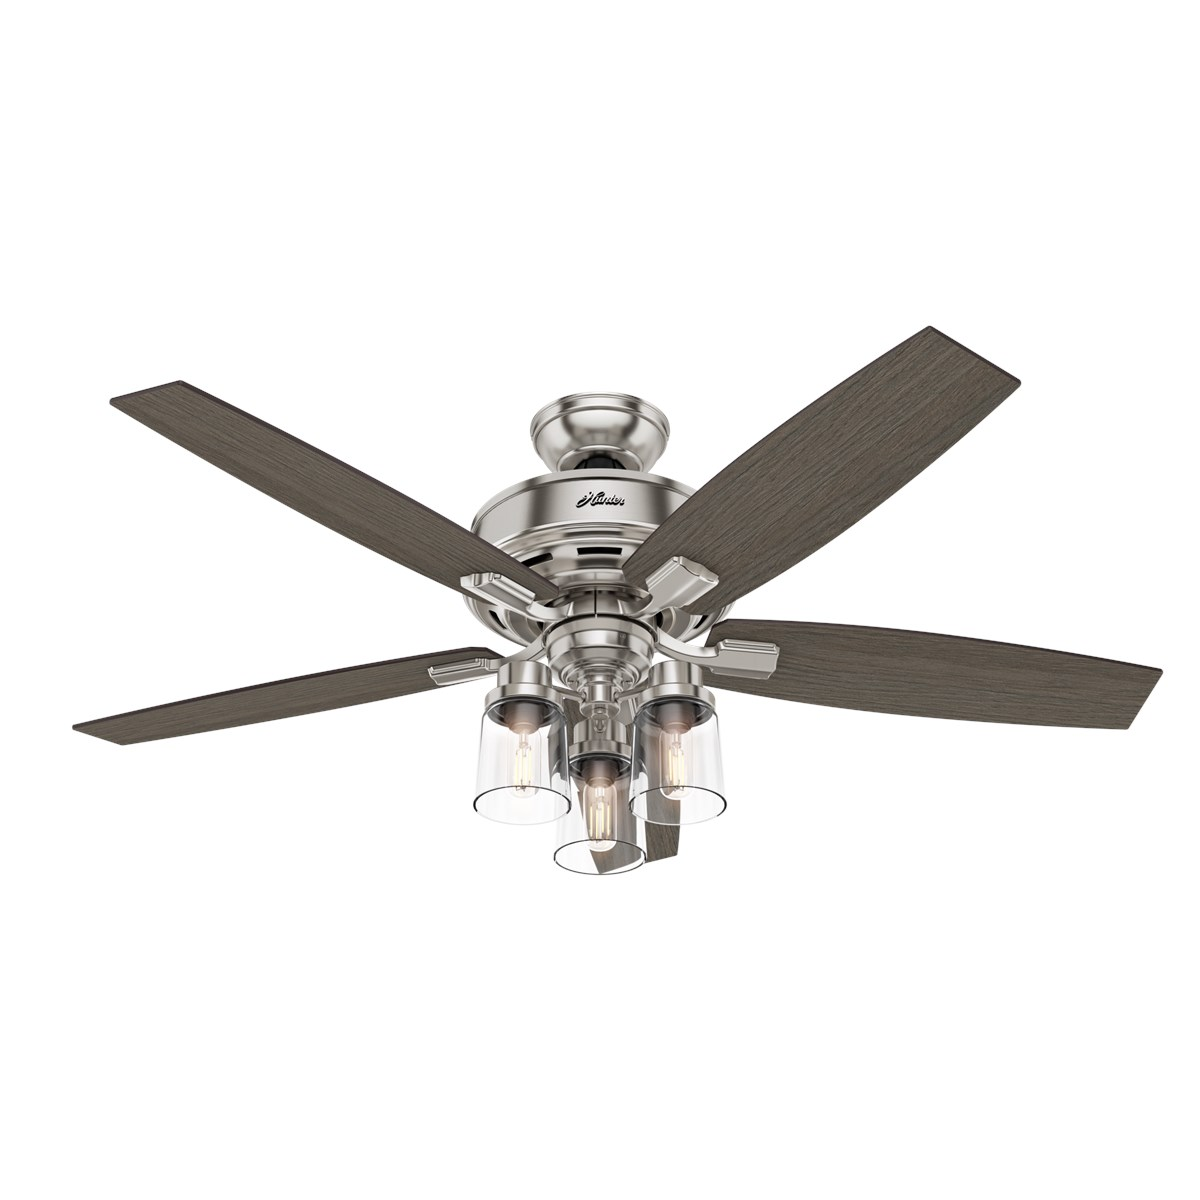 52 Ceiling Fan With Light Handheld Remote